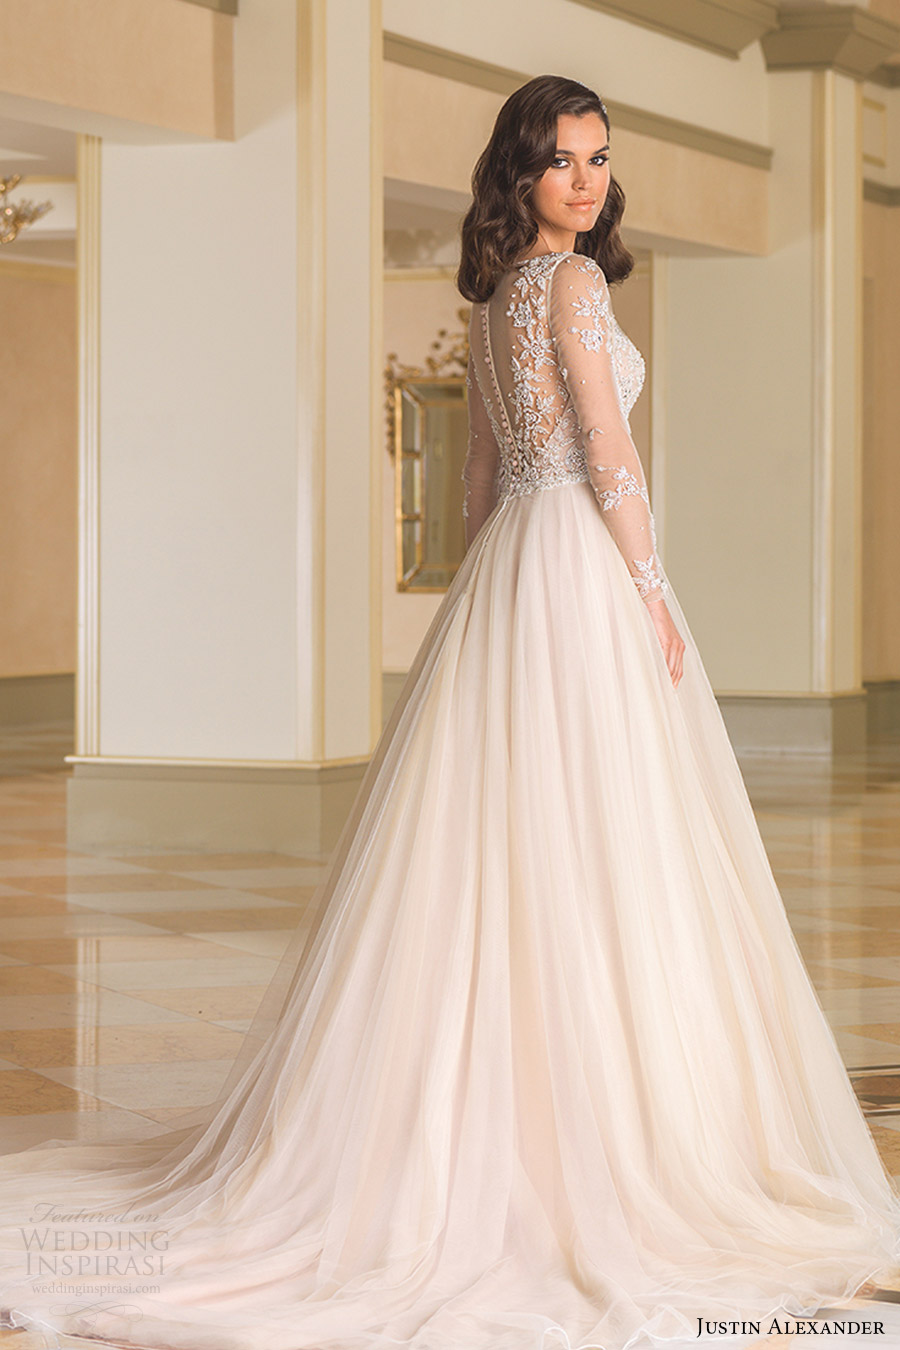 justin alexander bridal fall 2016 illusion long sleeves bateau neck ball gown wedding dress (8873) bv nude color beaded bodice sheer back train